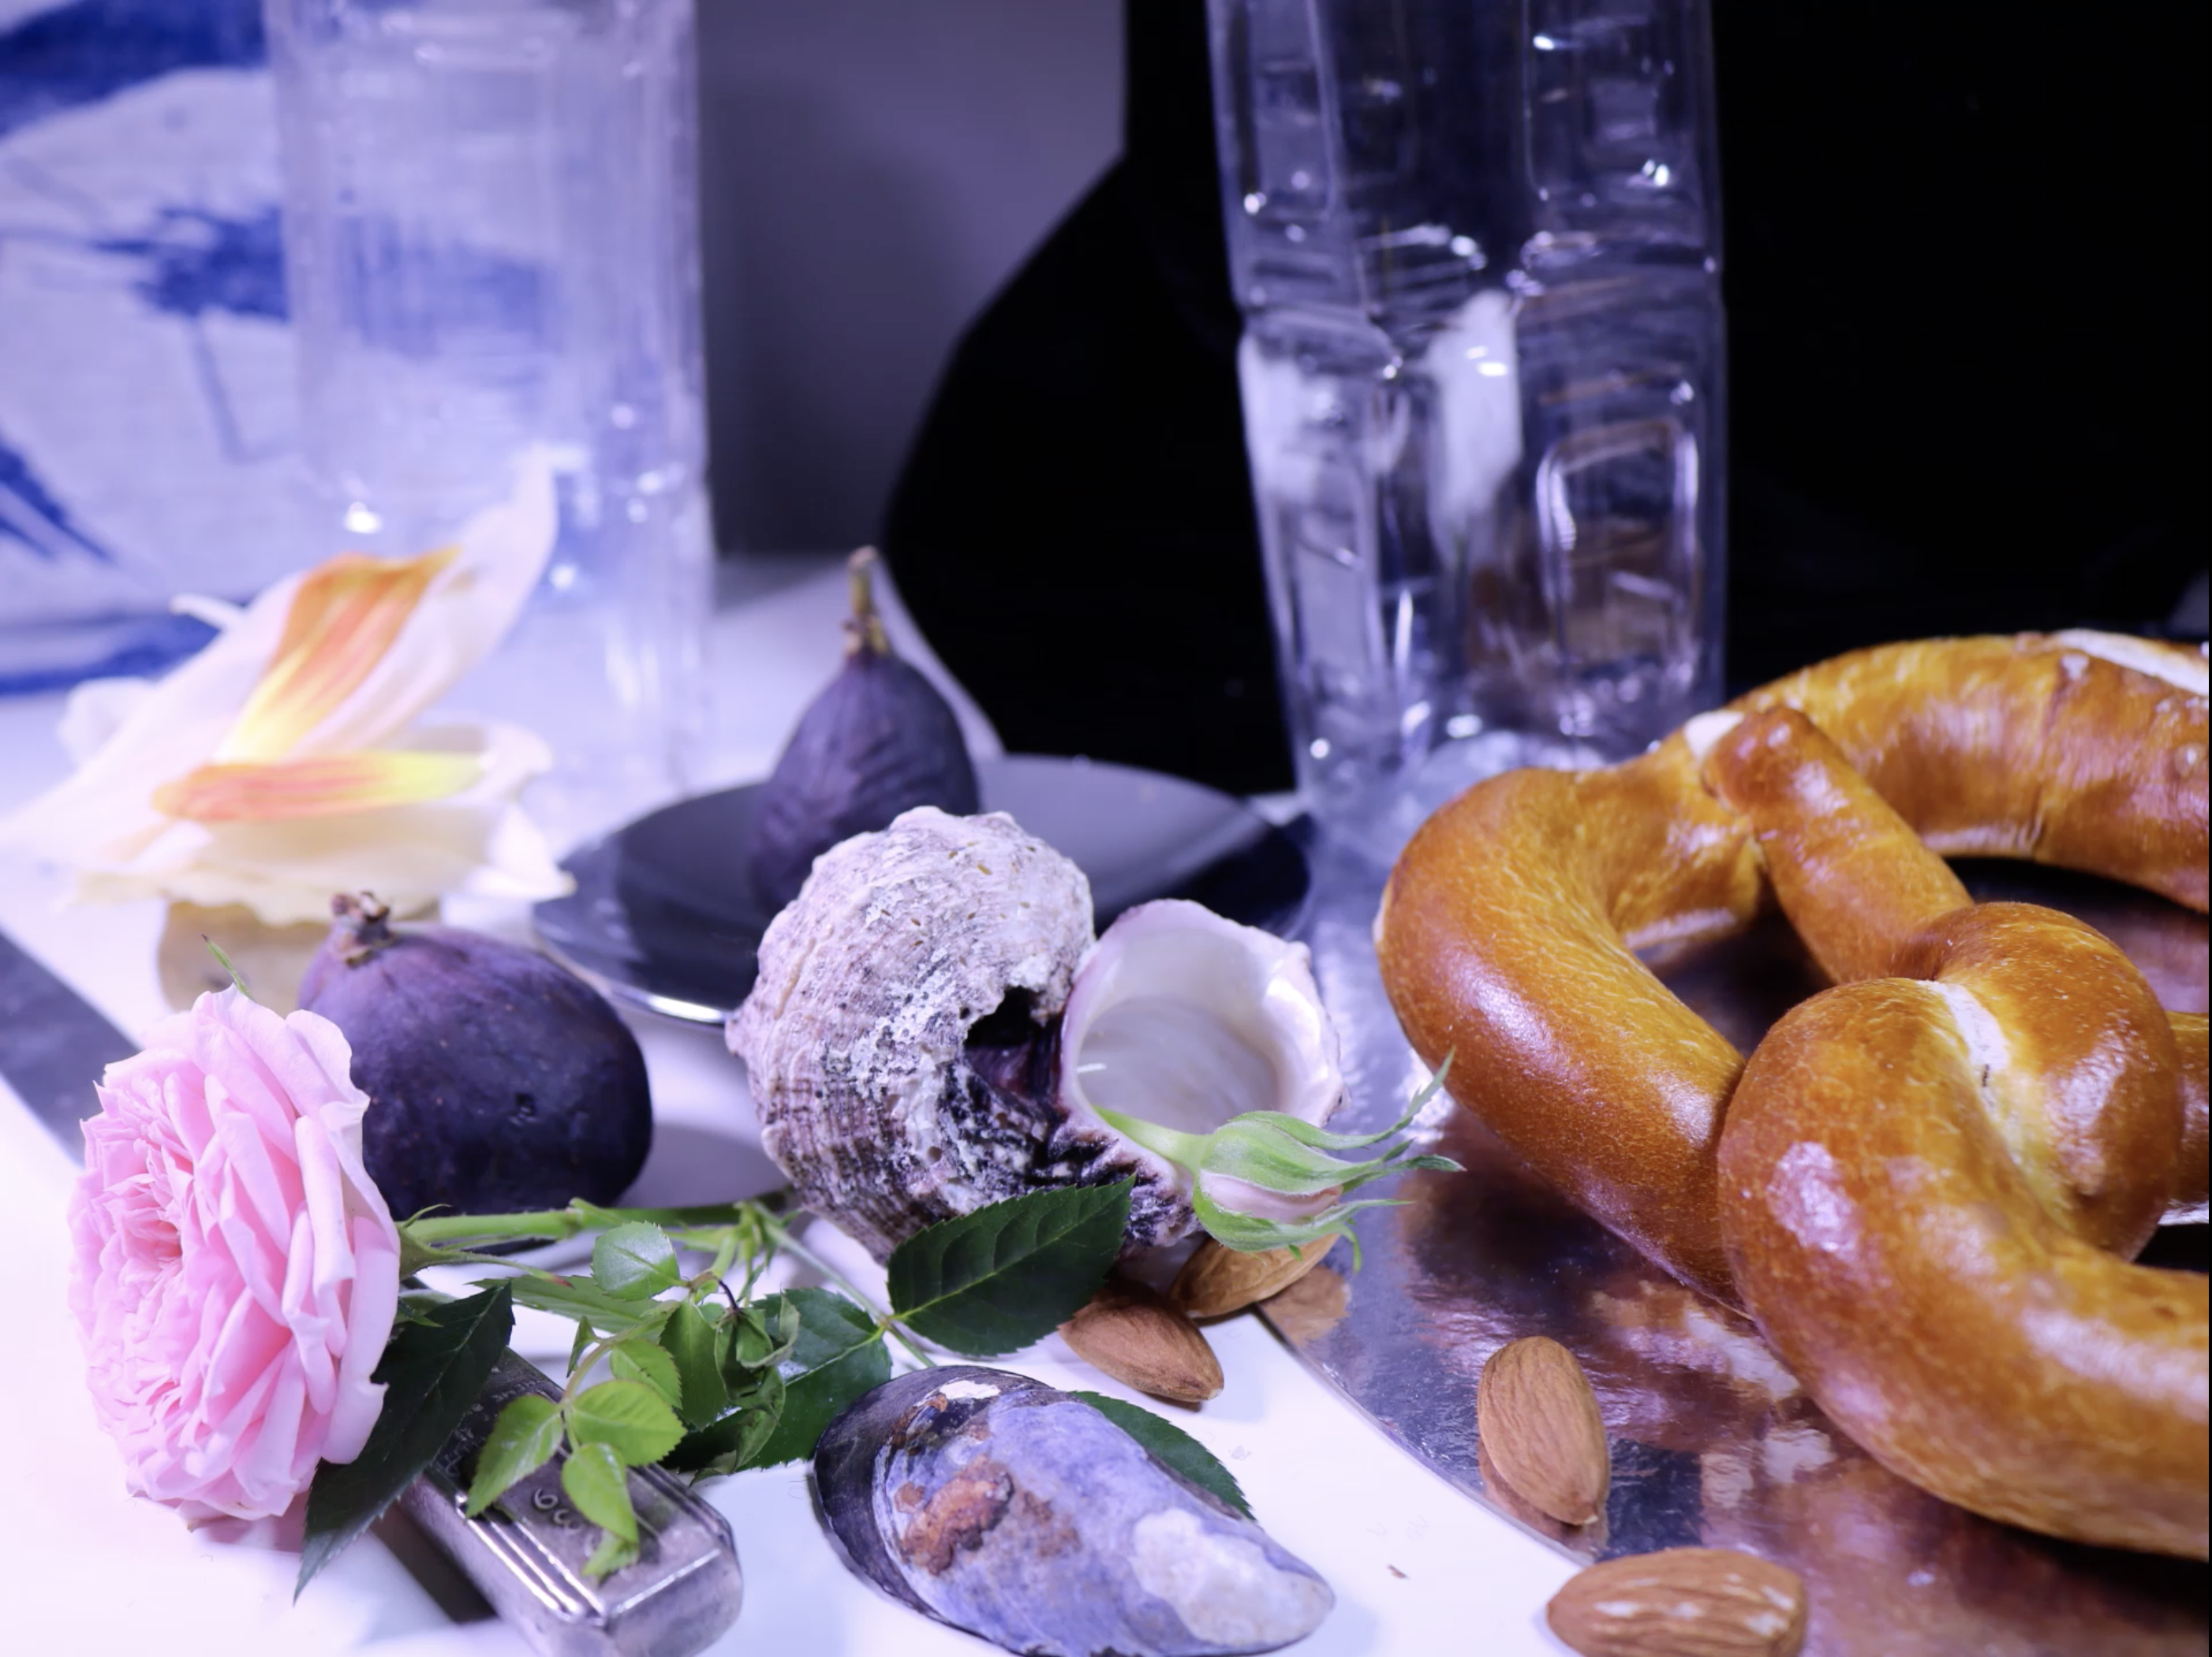 A still life composition that includes a pretzel on the right hand side side of the image, on a table with a few almonds, a pink rose, a silver knife, shells, figs, flower petals in the background and clear, empty plastic drinking containers.